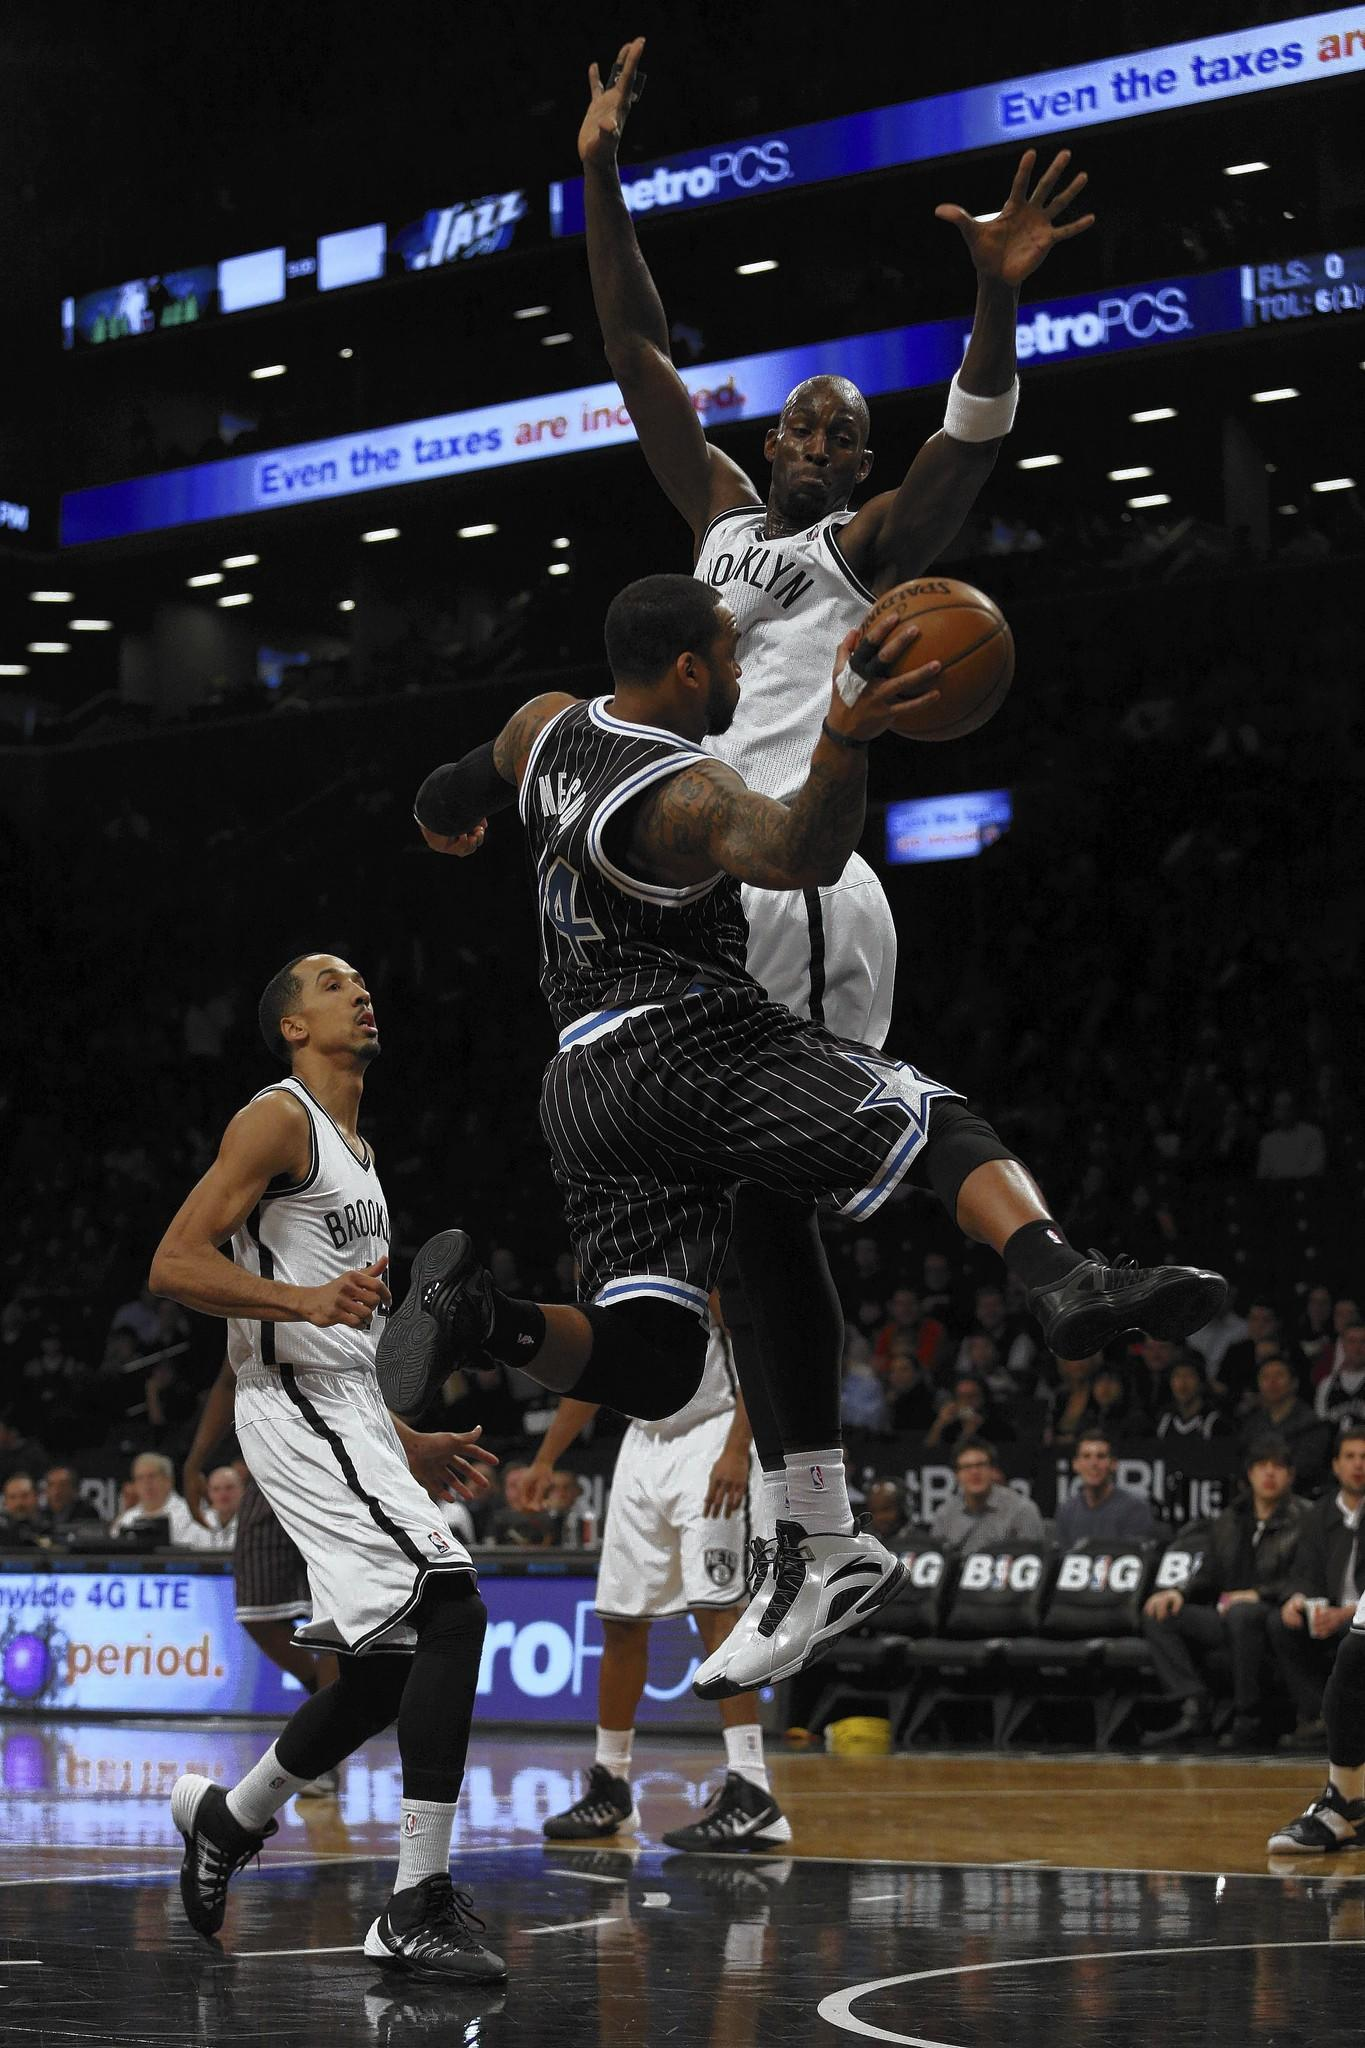 Orlando Magic point guard Jameer Nelson (14) passes the ball around Brooklyn Nets power forward Kevin Garnett (2) during the first quarter at Barclays Center.